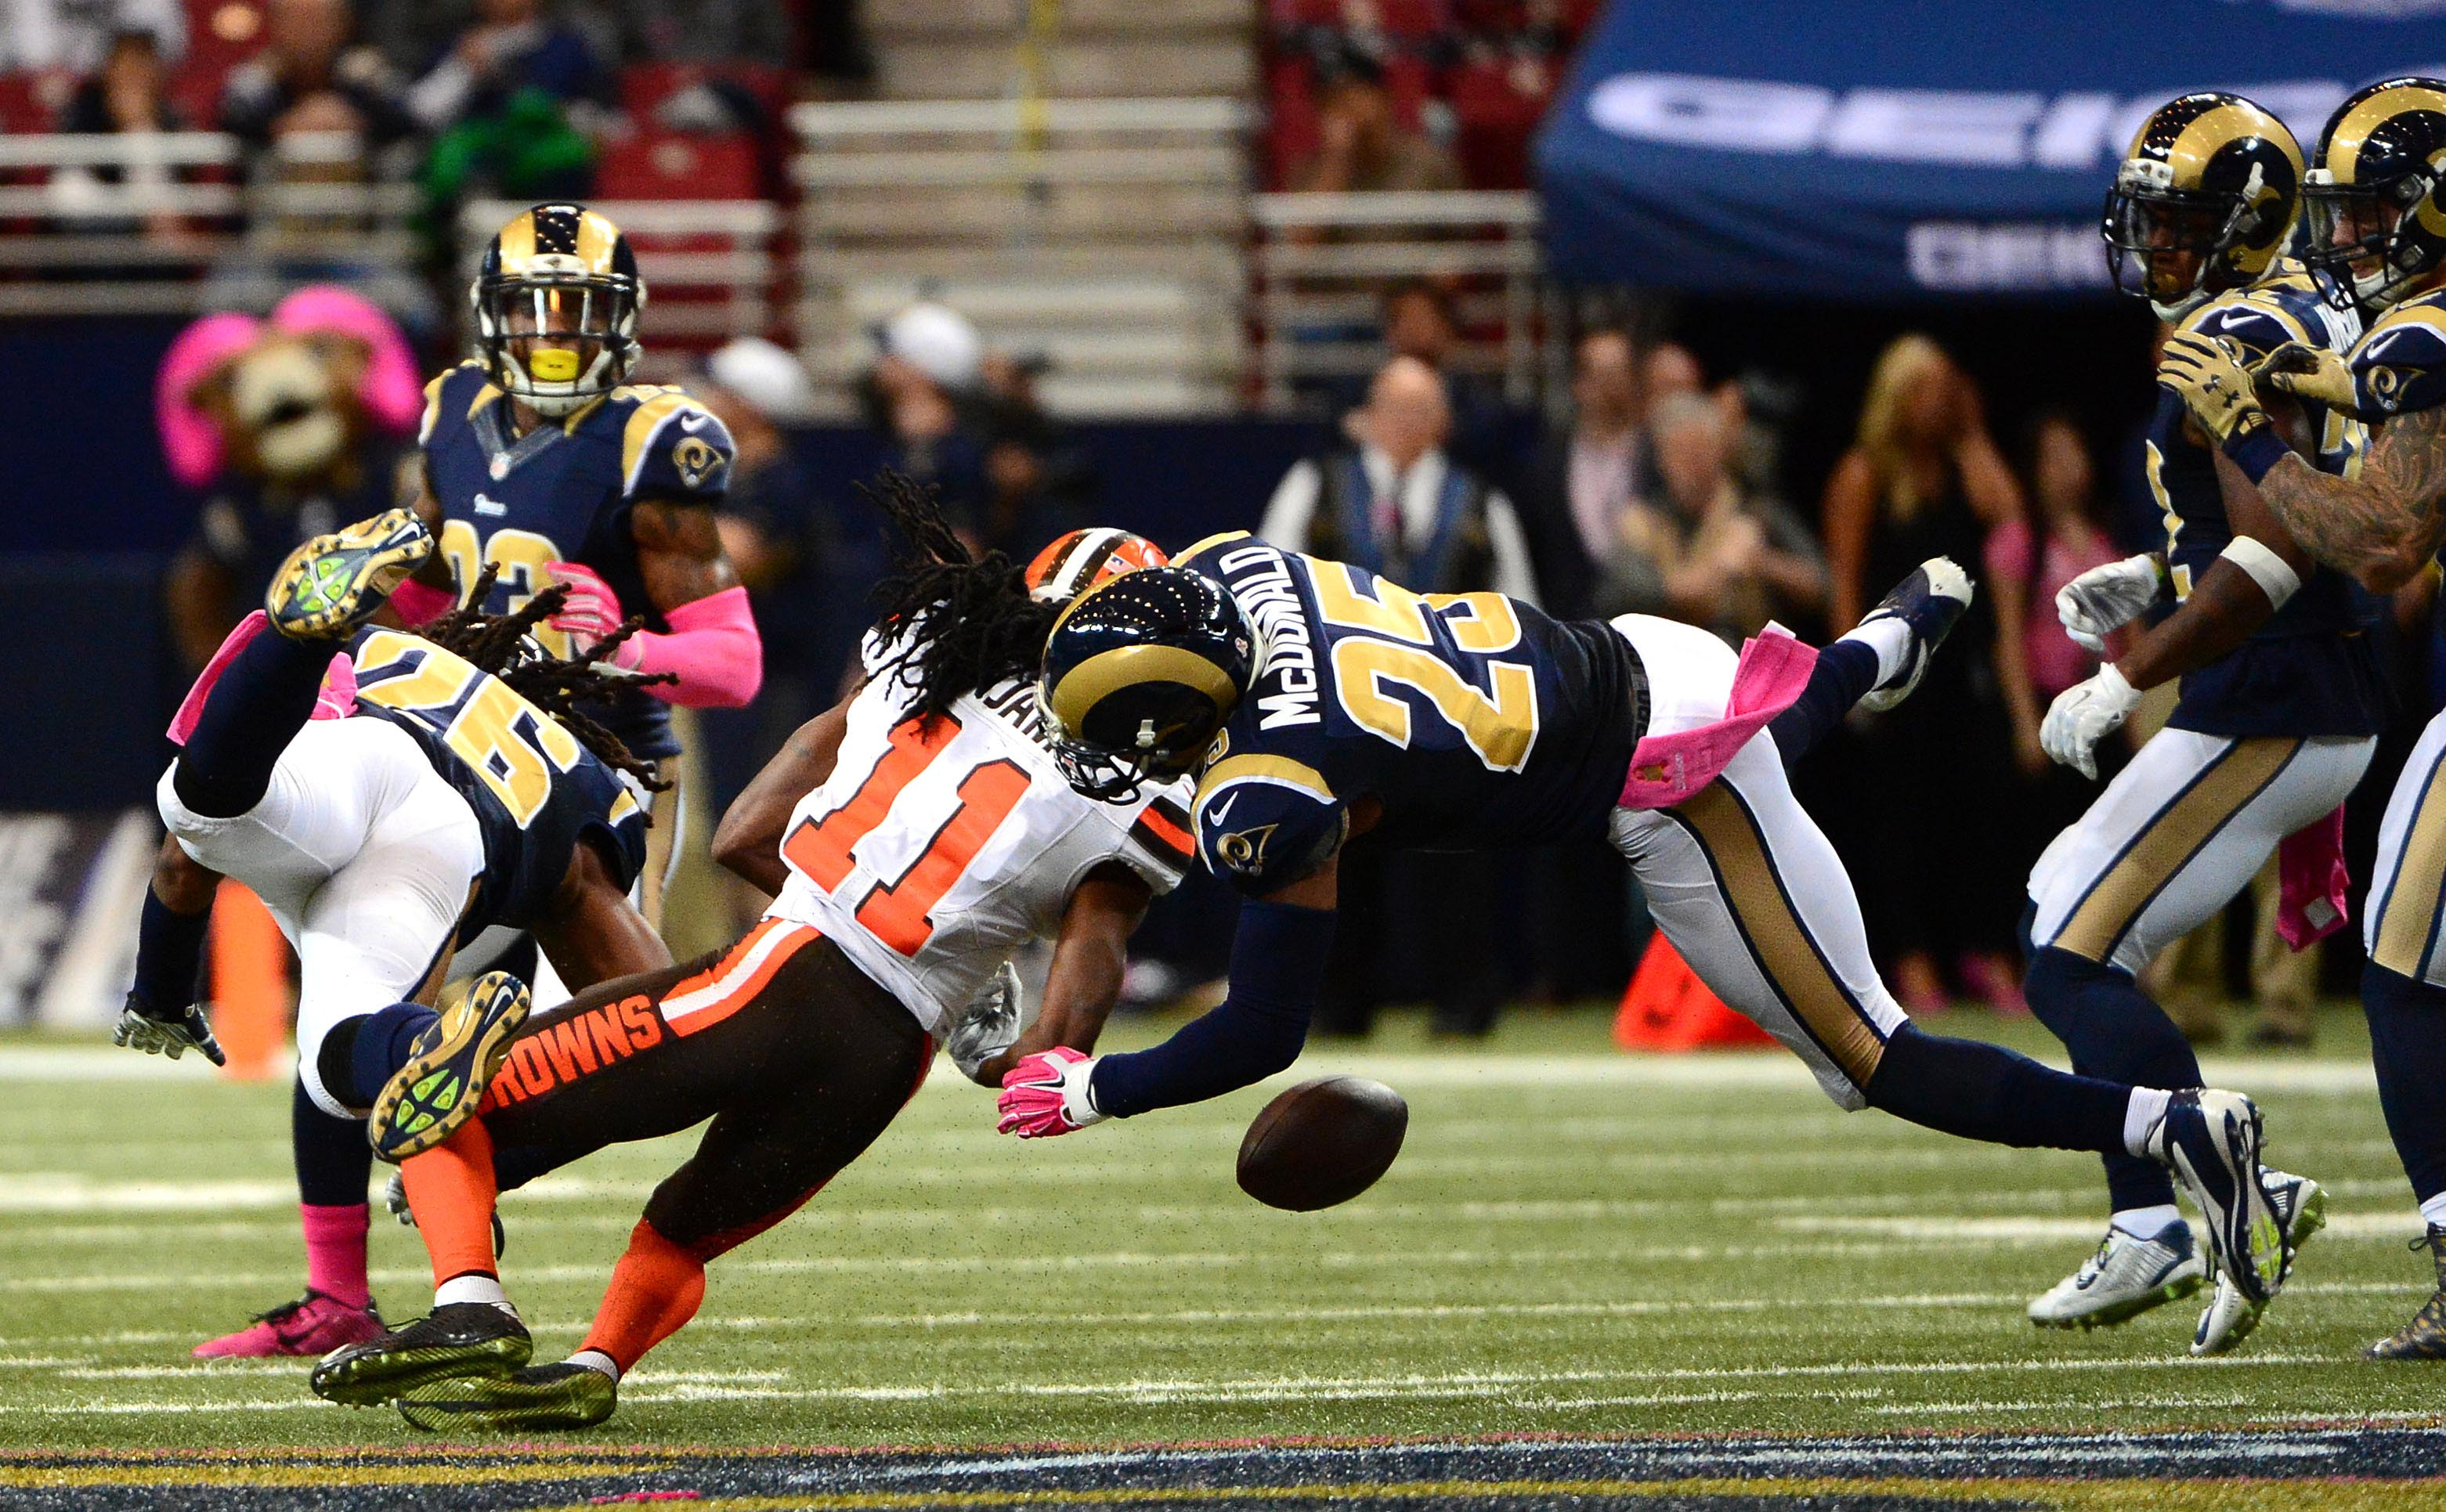 8883968-nfl-cleveland-browns-at-st.-louis-rams